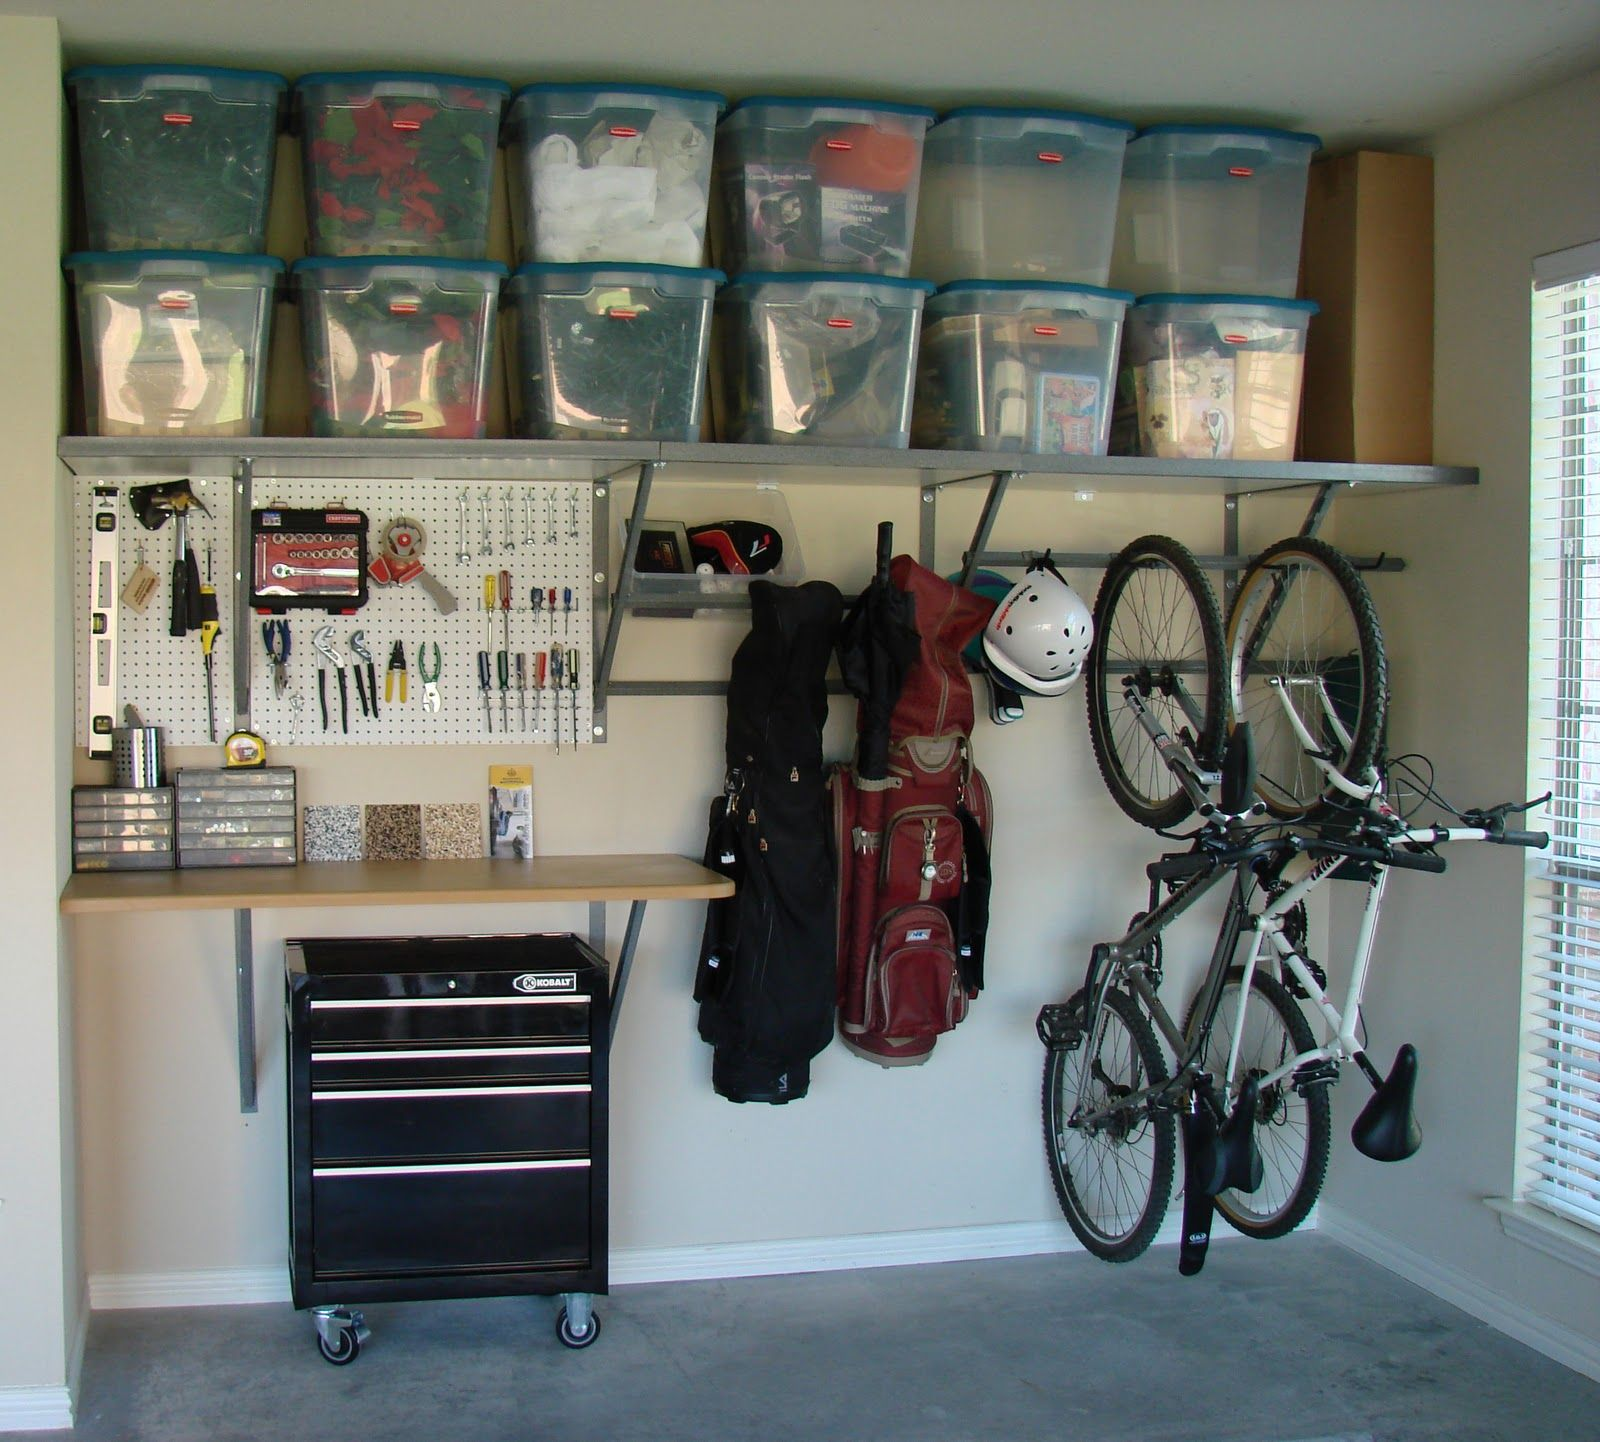 storage garaje ideas organization para orden monkey garage en pin remodel mantener bars el spaces ideasgarage